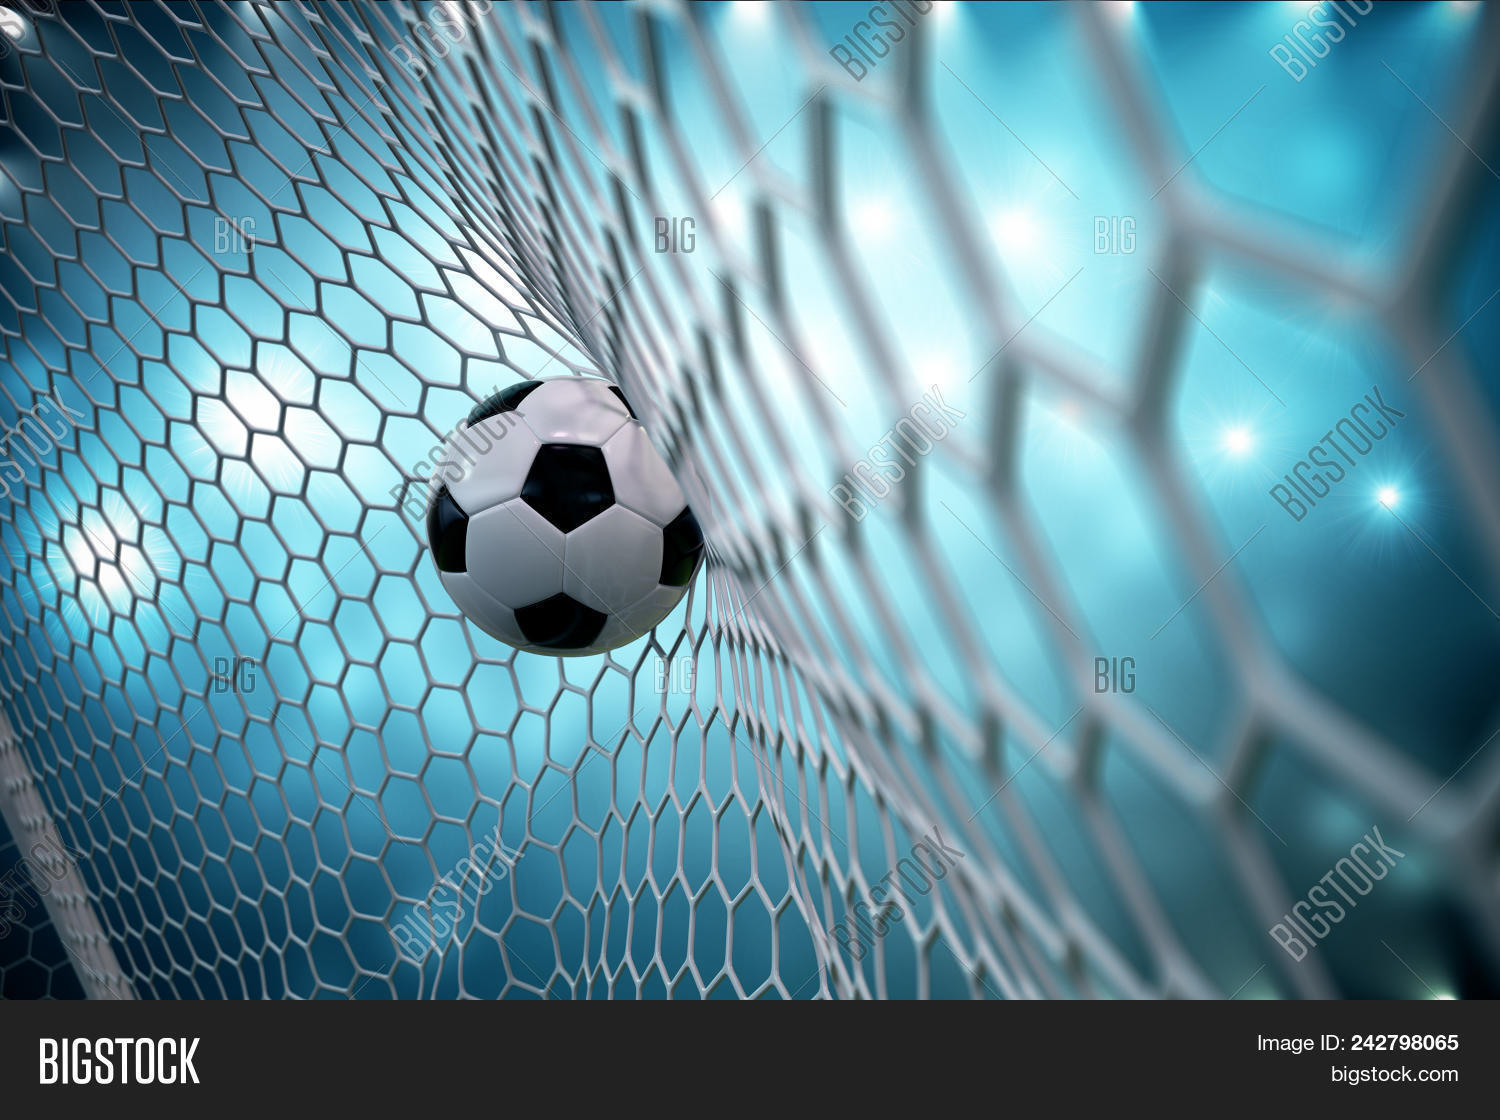 3d Rendering Soccer Image Amp Photo Free Trial